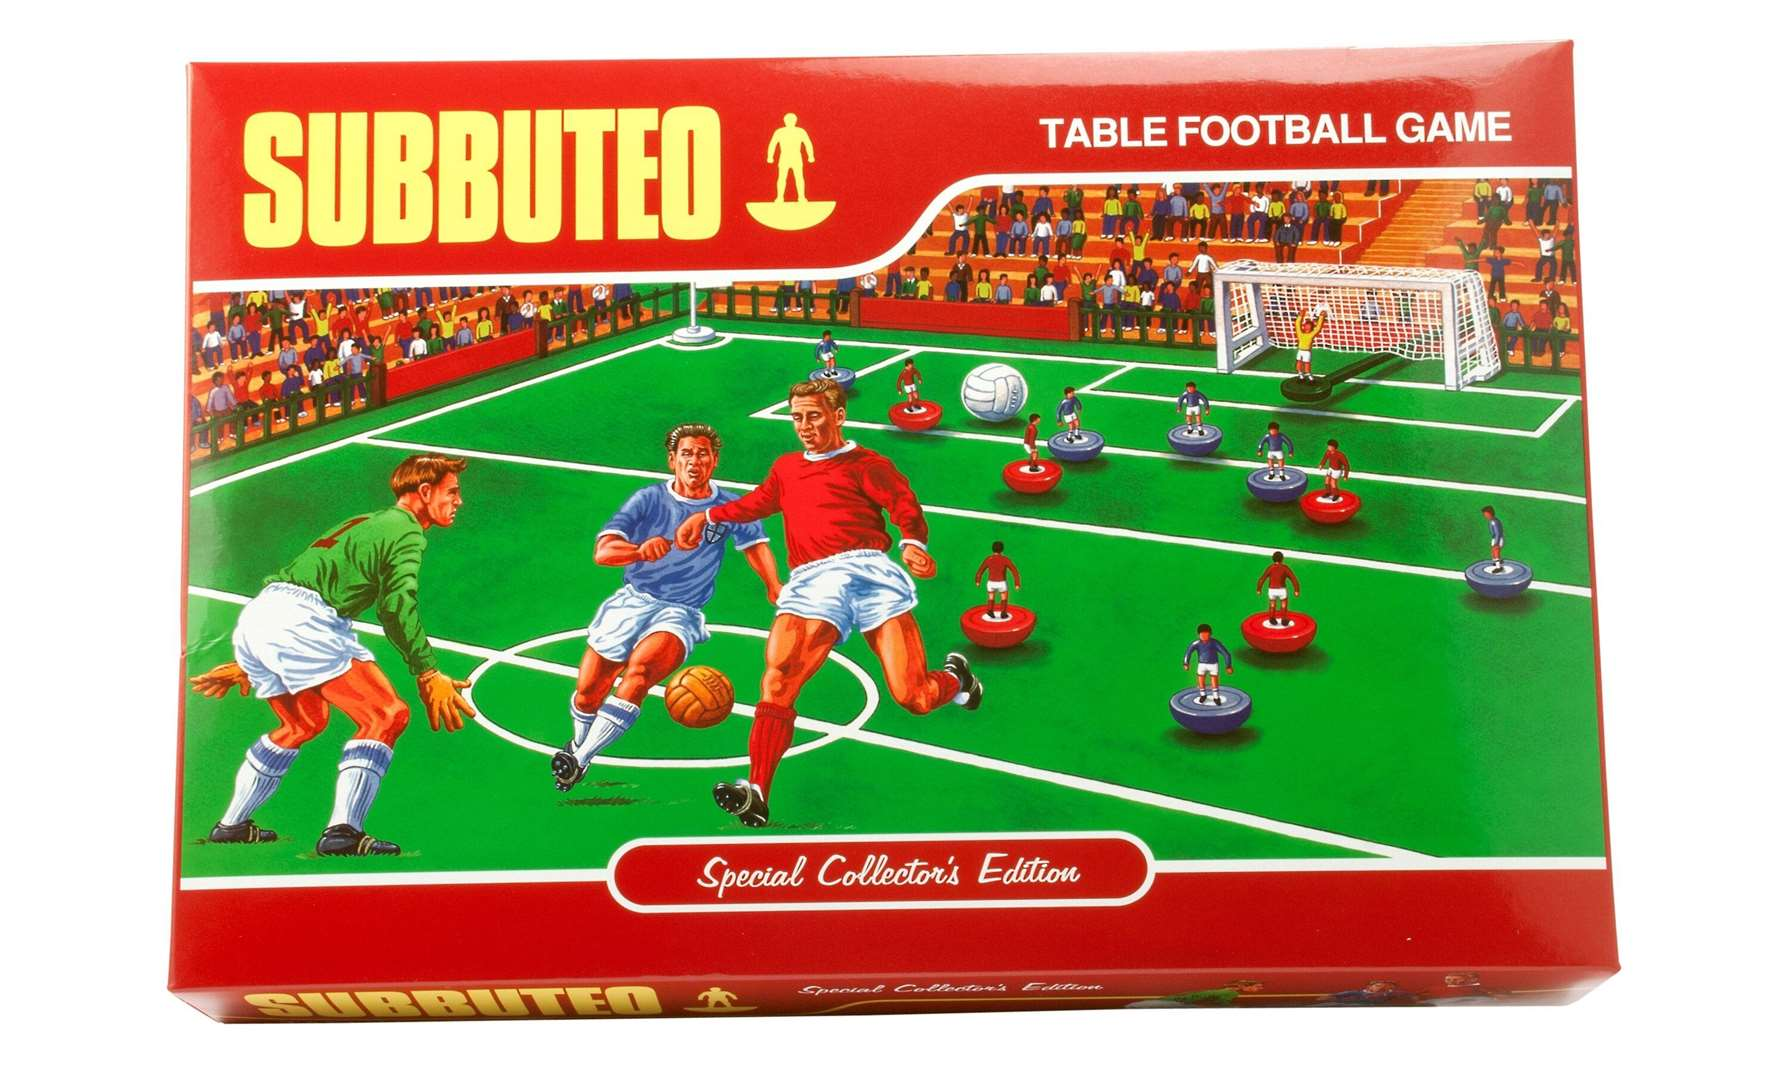 The collector's edition of Subbuteo is being sold at John Lewis